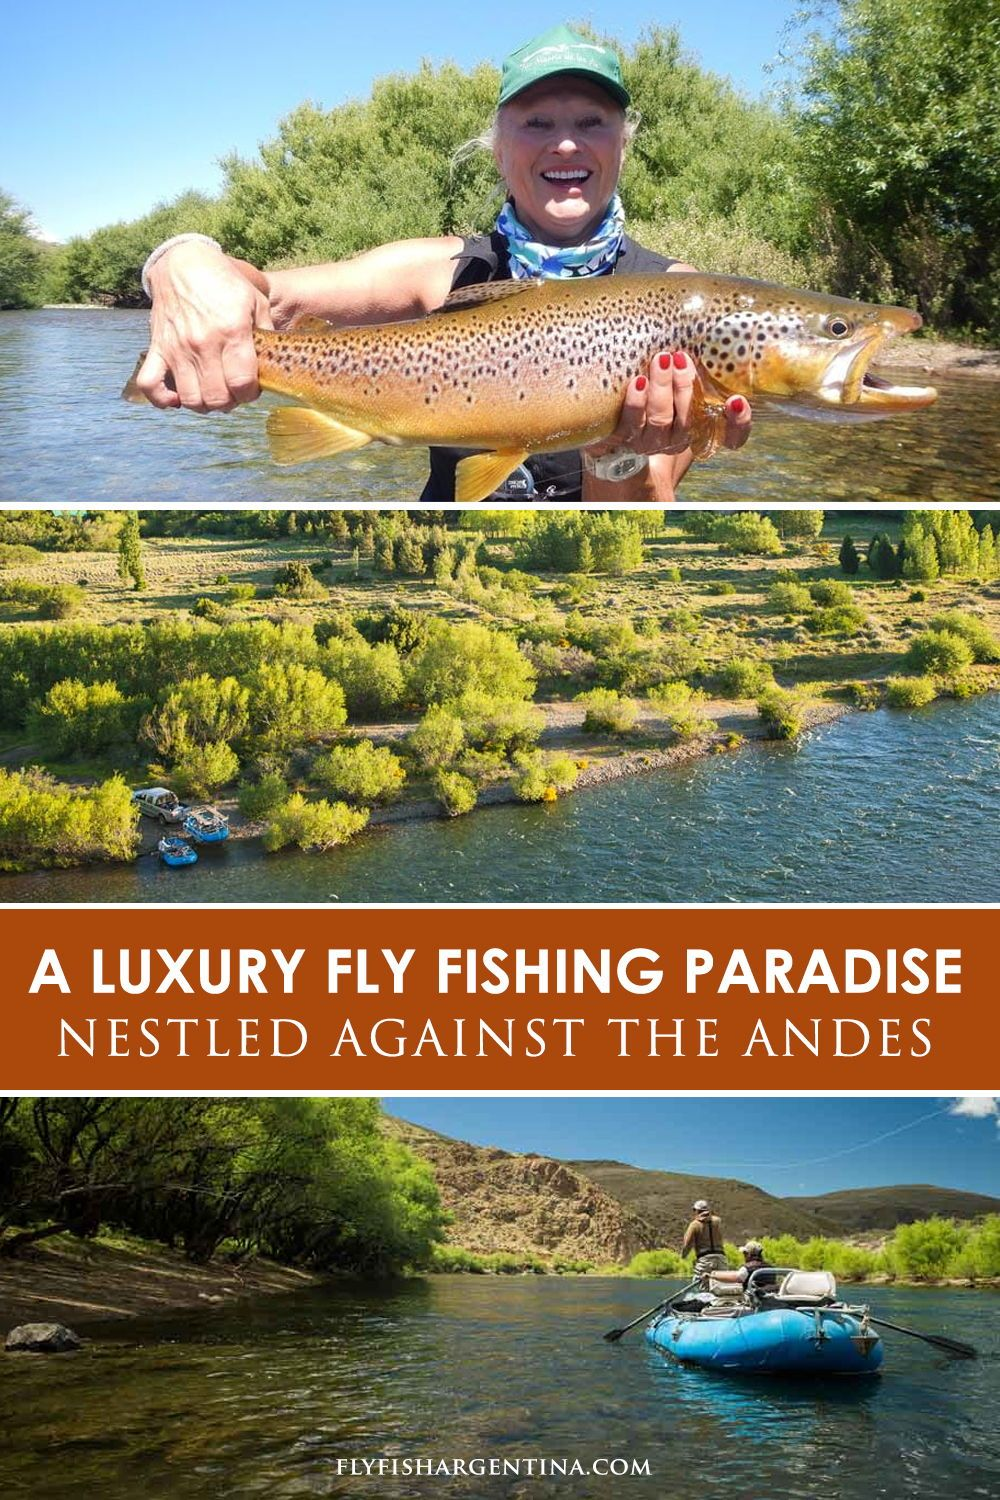 Fly Fishing Luxury Vacation Destination In Patagonia Fly Fishing Patagonia Travel Fishing Vacation